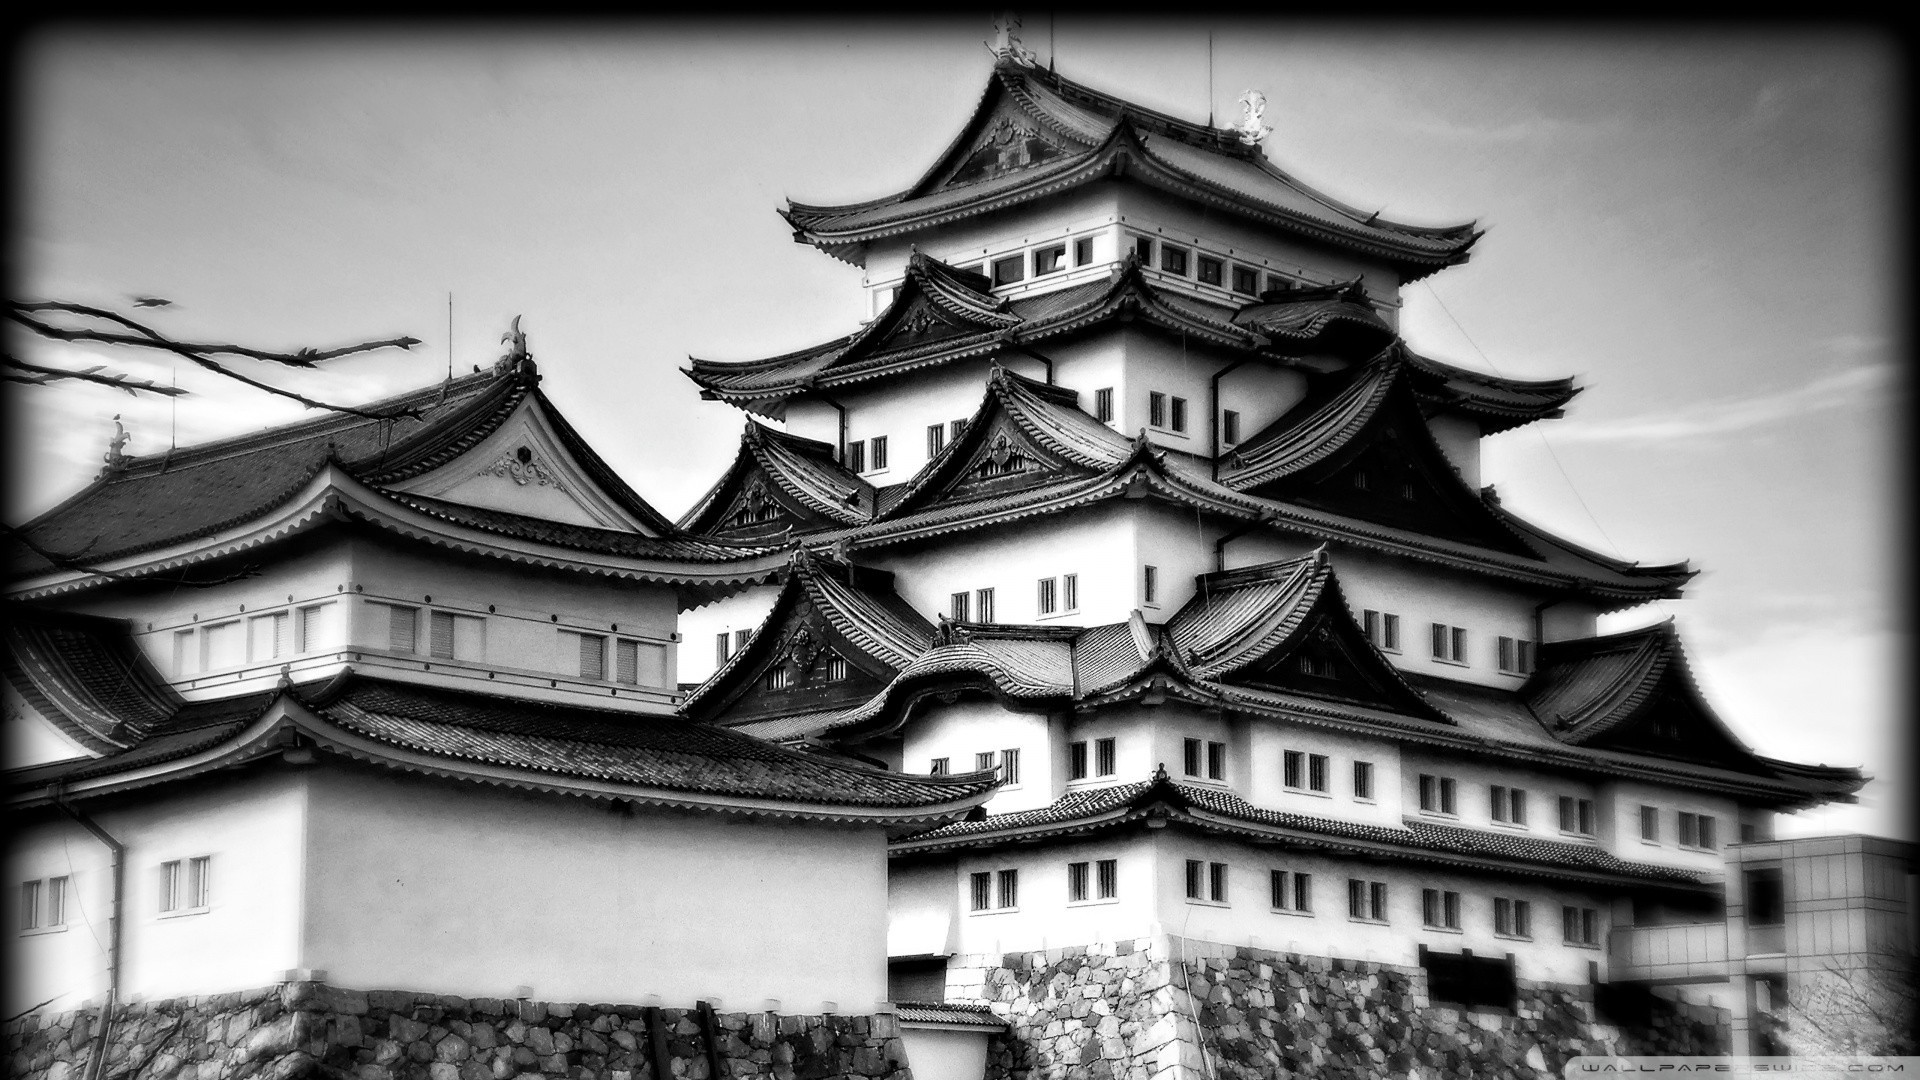 A great look at one of the most famous castles in Japan. Nagoya Castle is  really a beauty. Come and see it in black and white HDR!